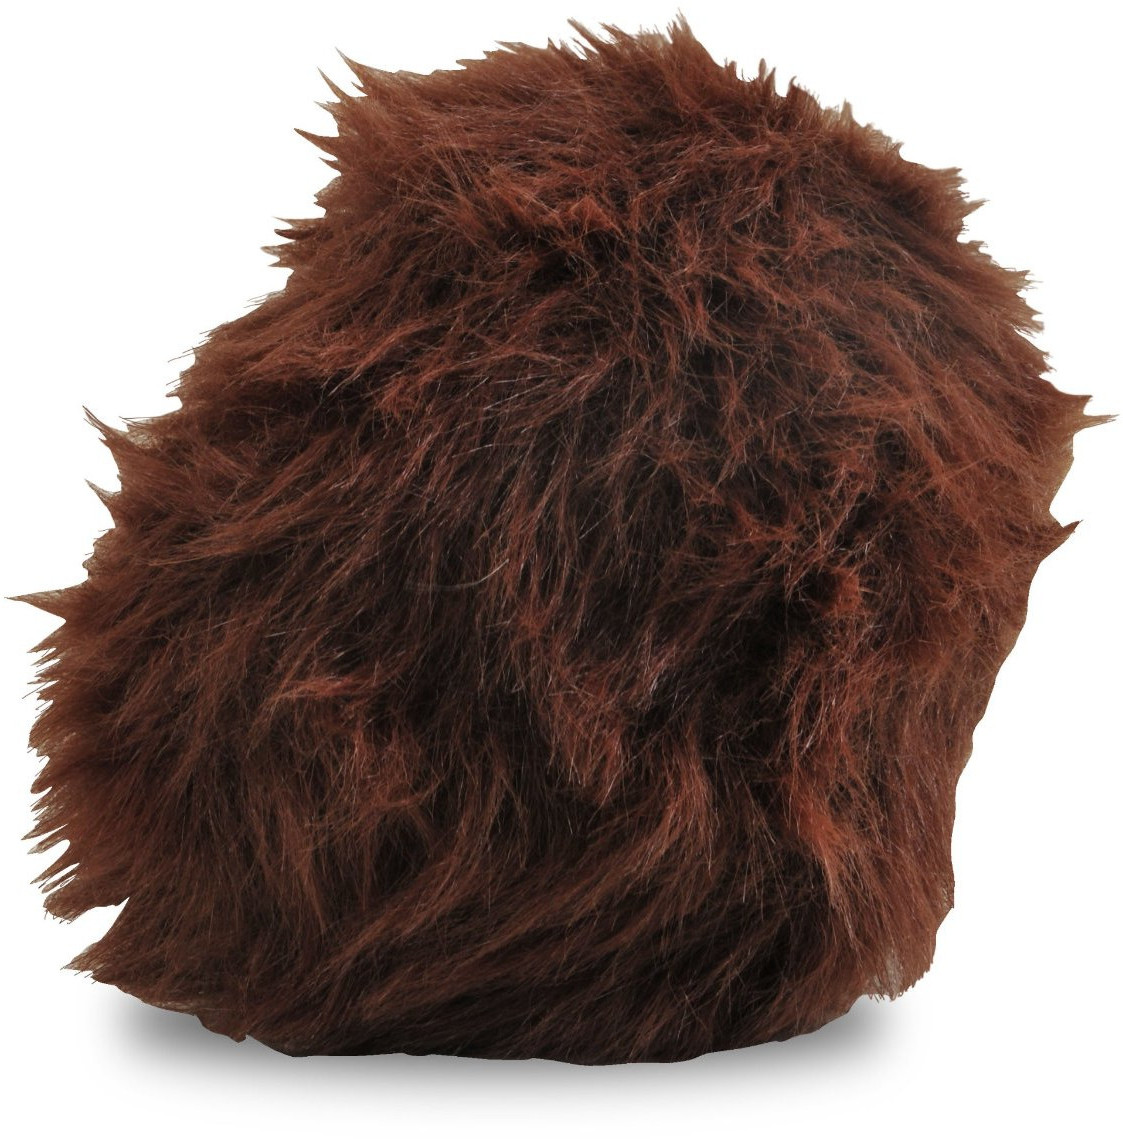 A tribble.